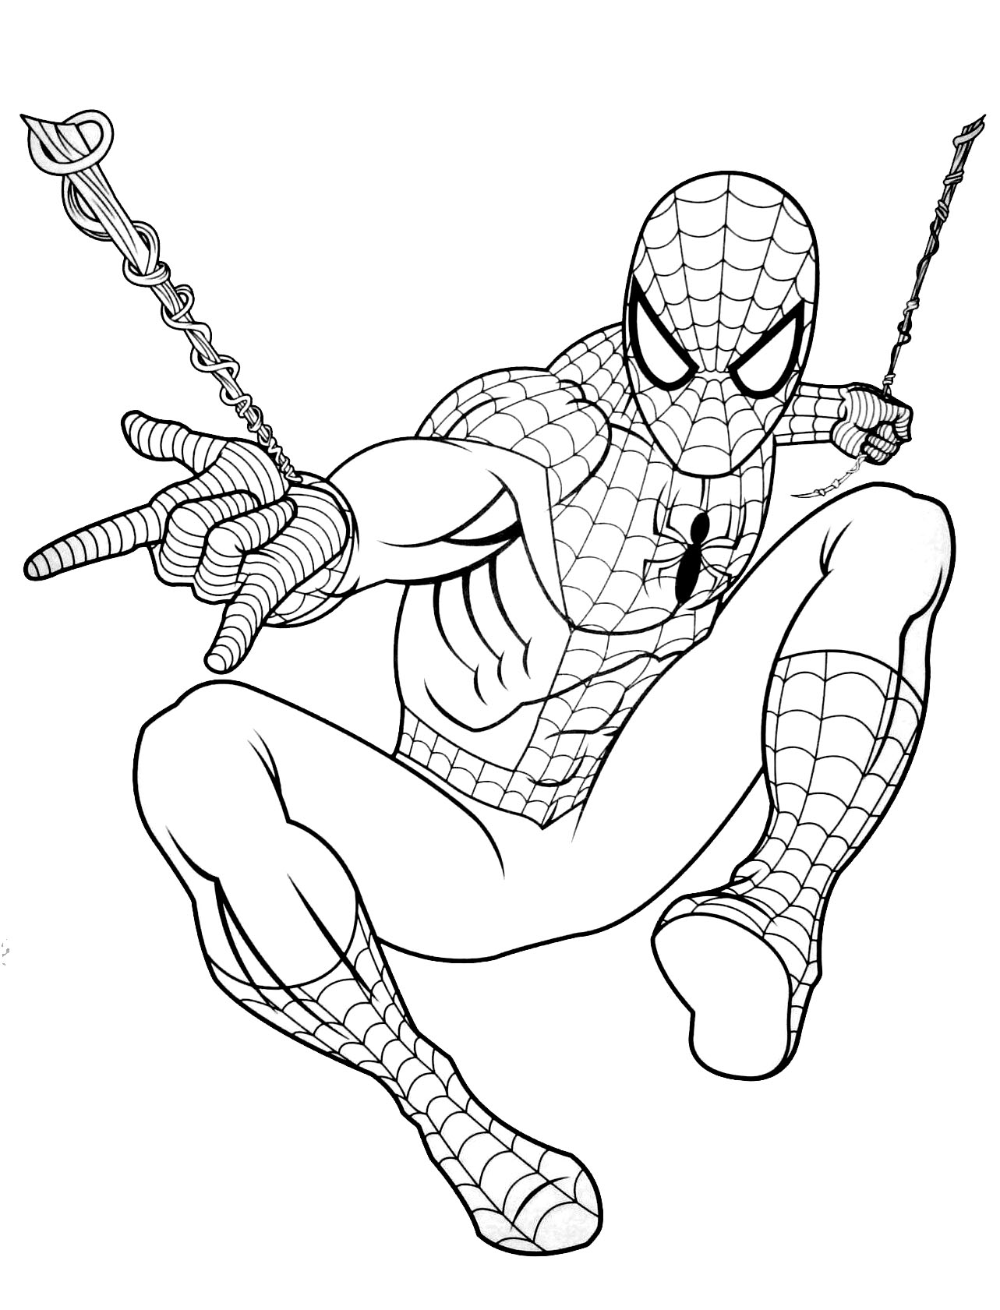 Spiderman Kids Coloring Pages Cartoon Coloring Pages Avengers Coloring Pages Spiderman Coloring